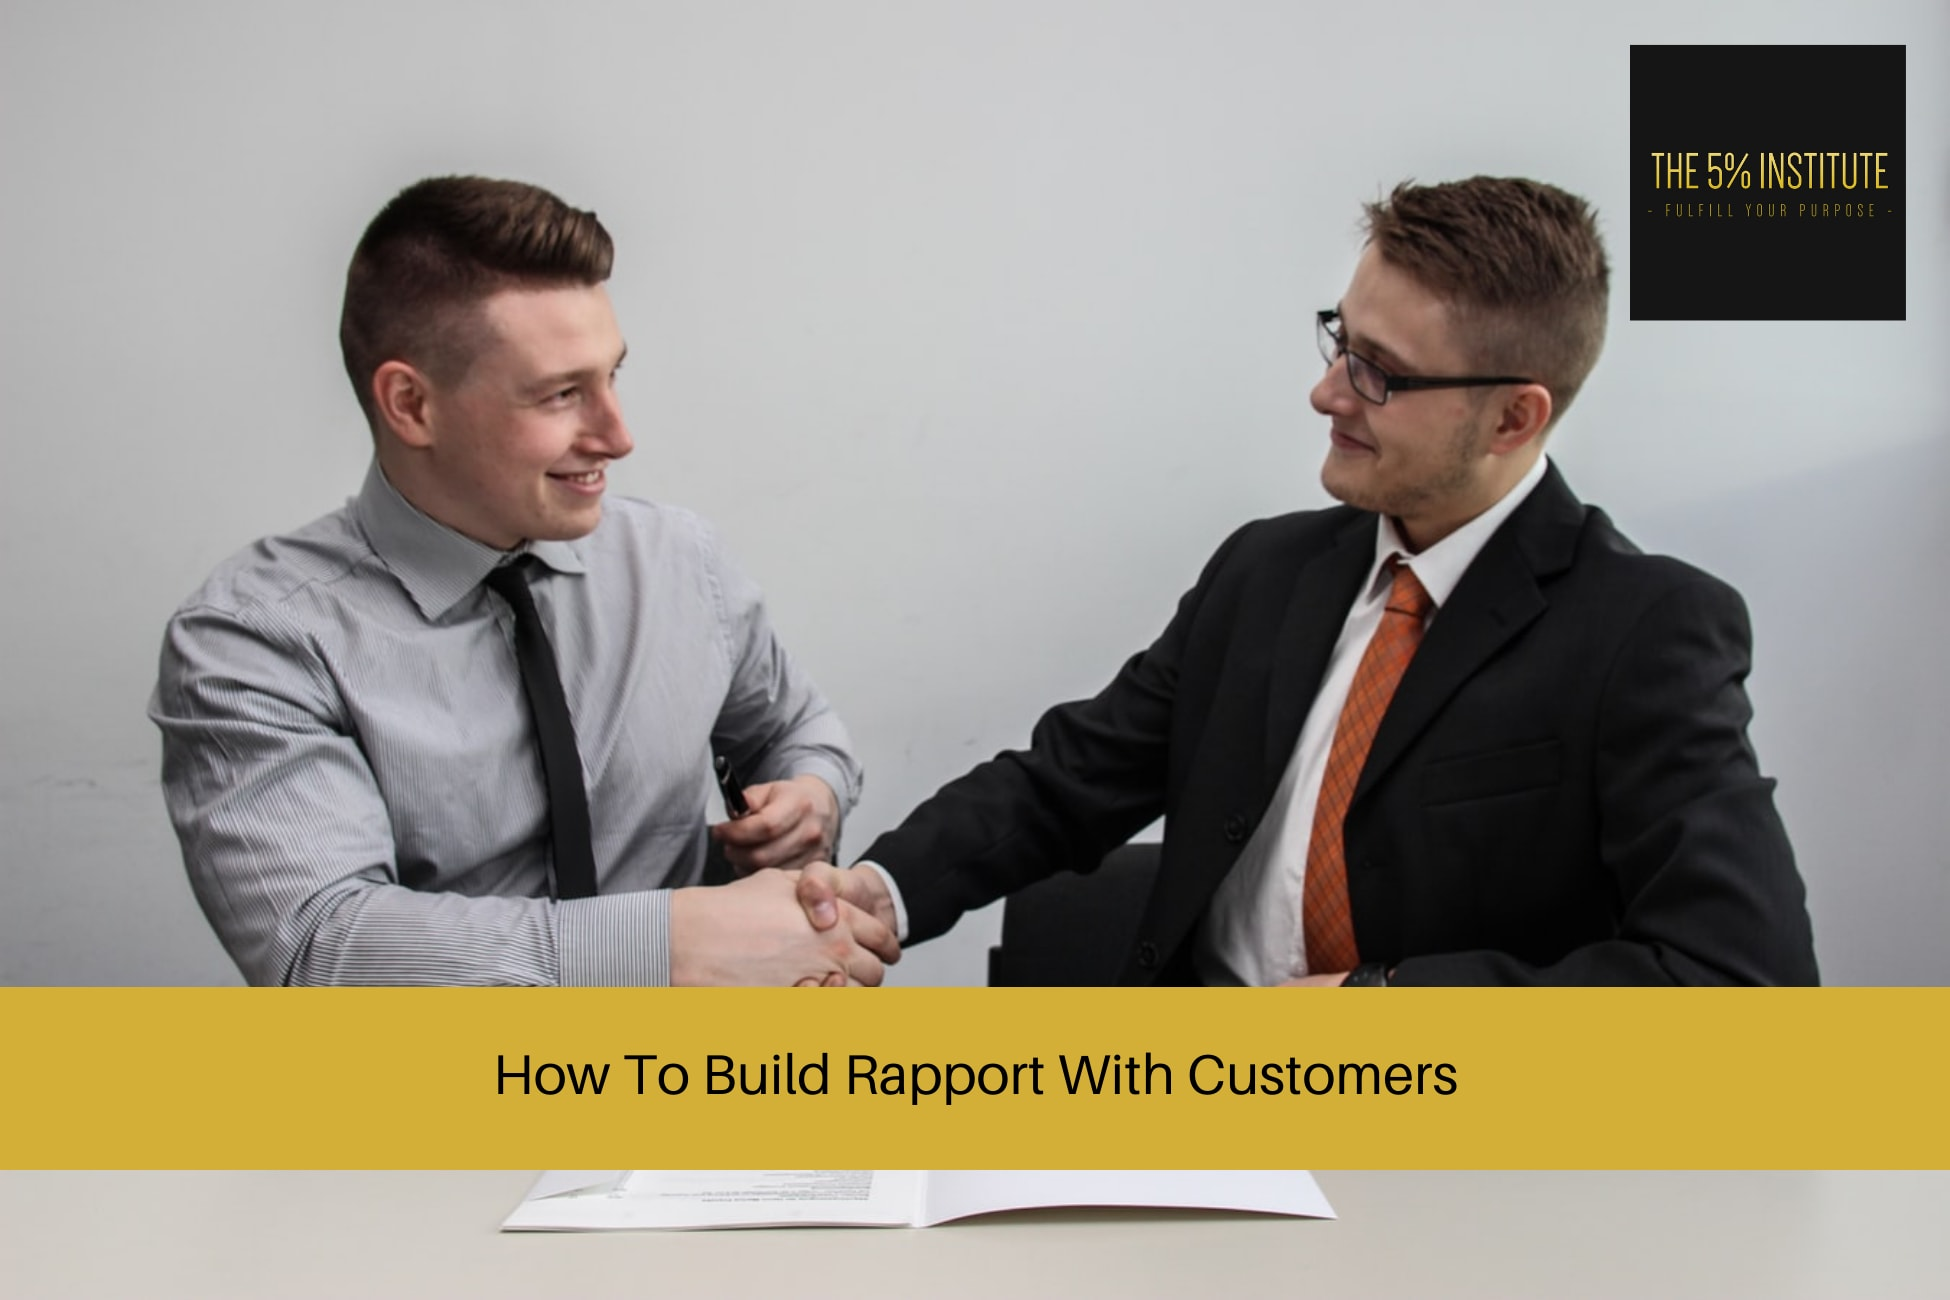 How To Build Rapport With Customers